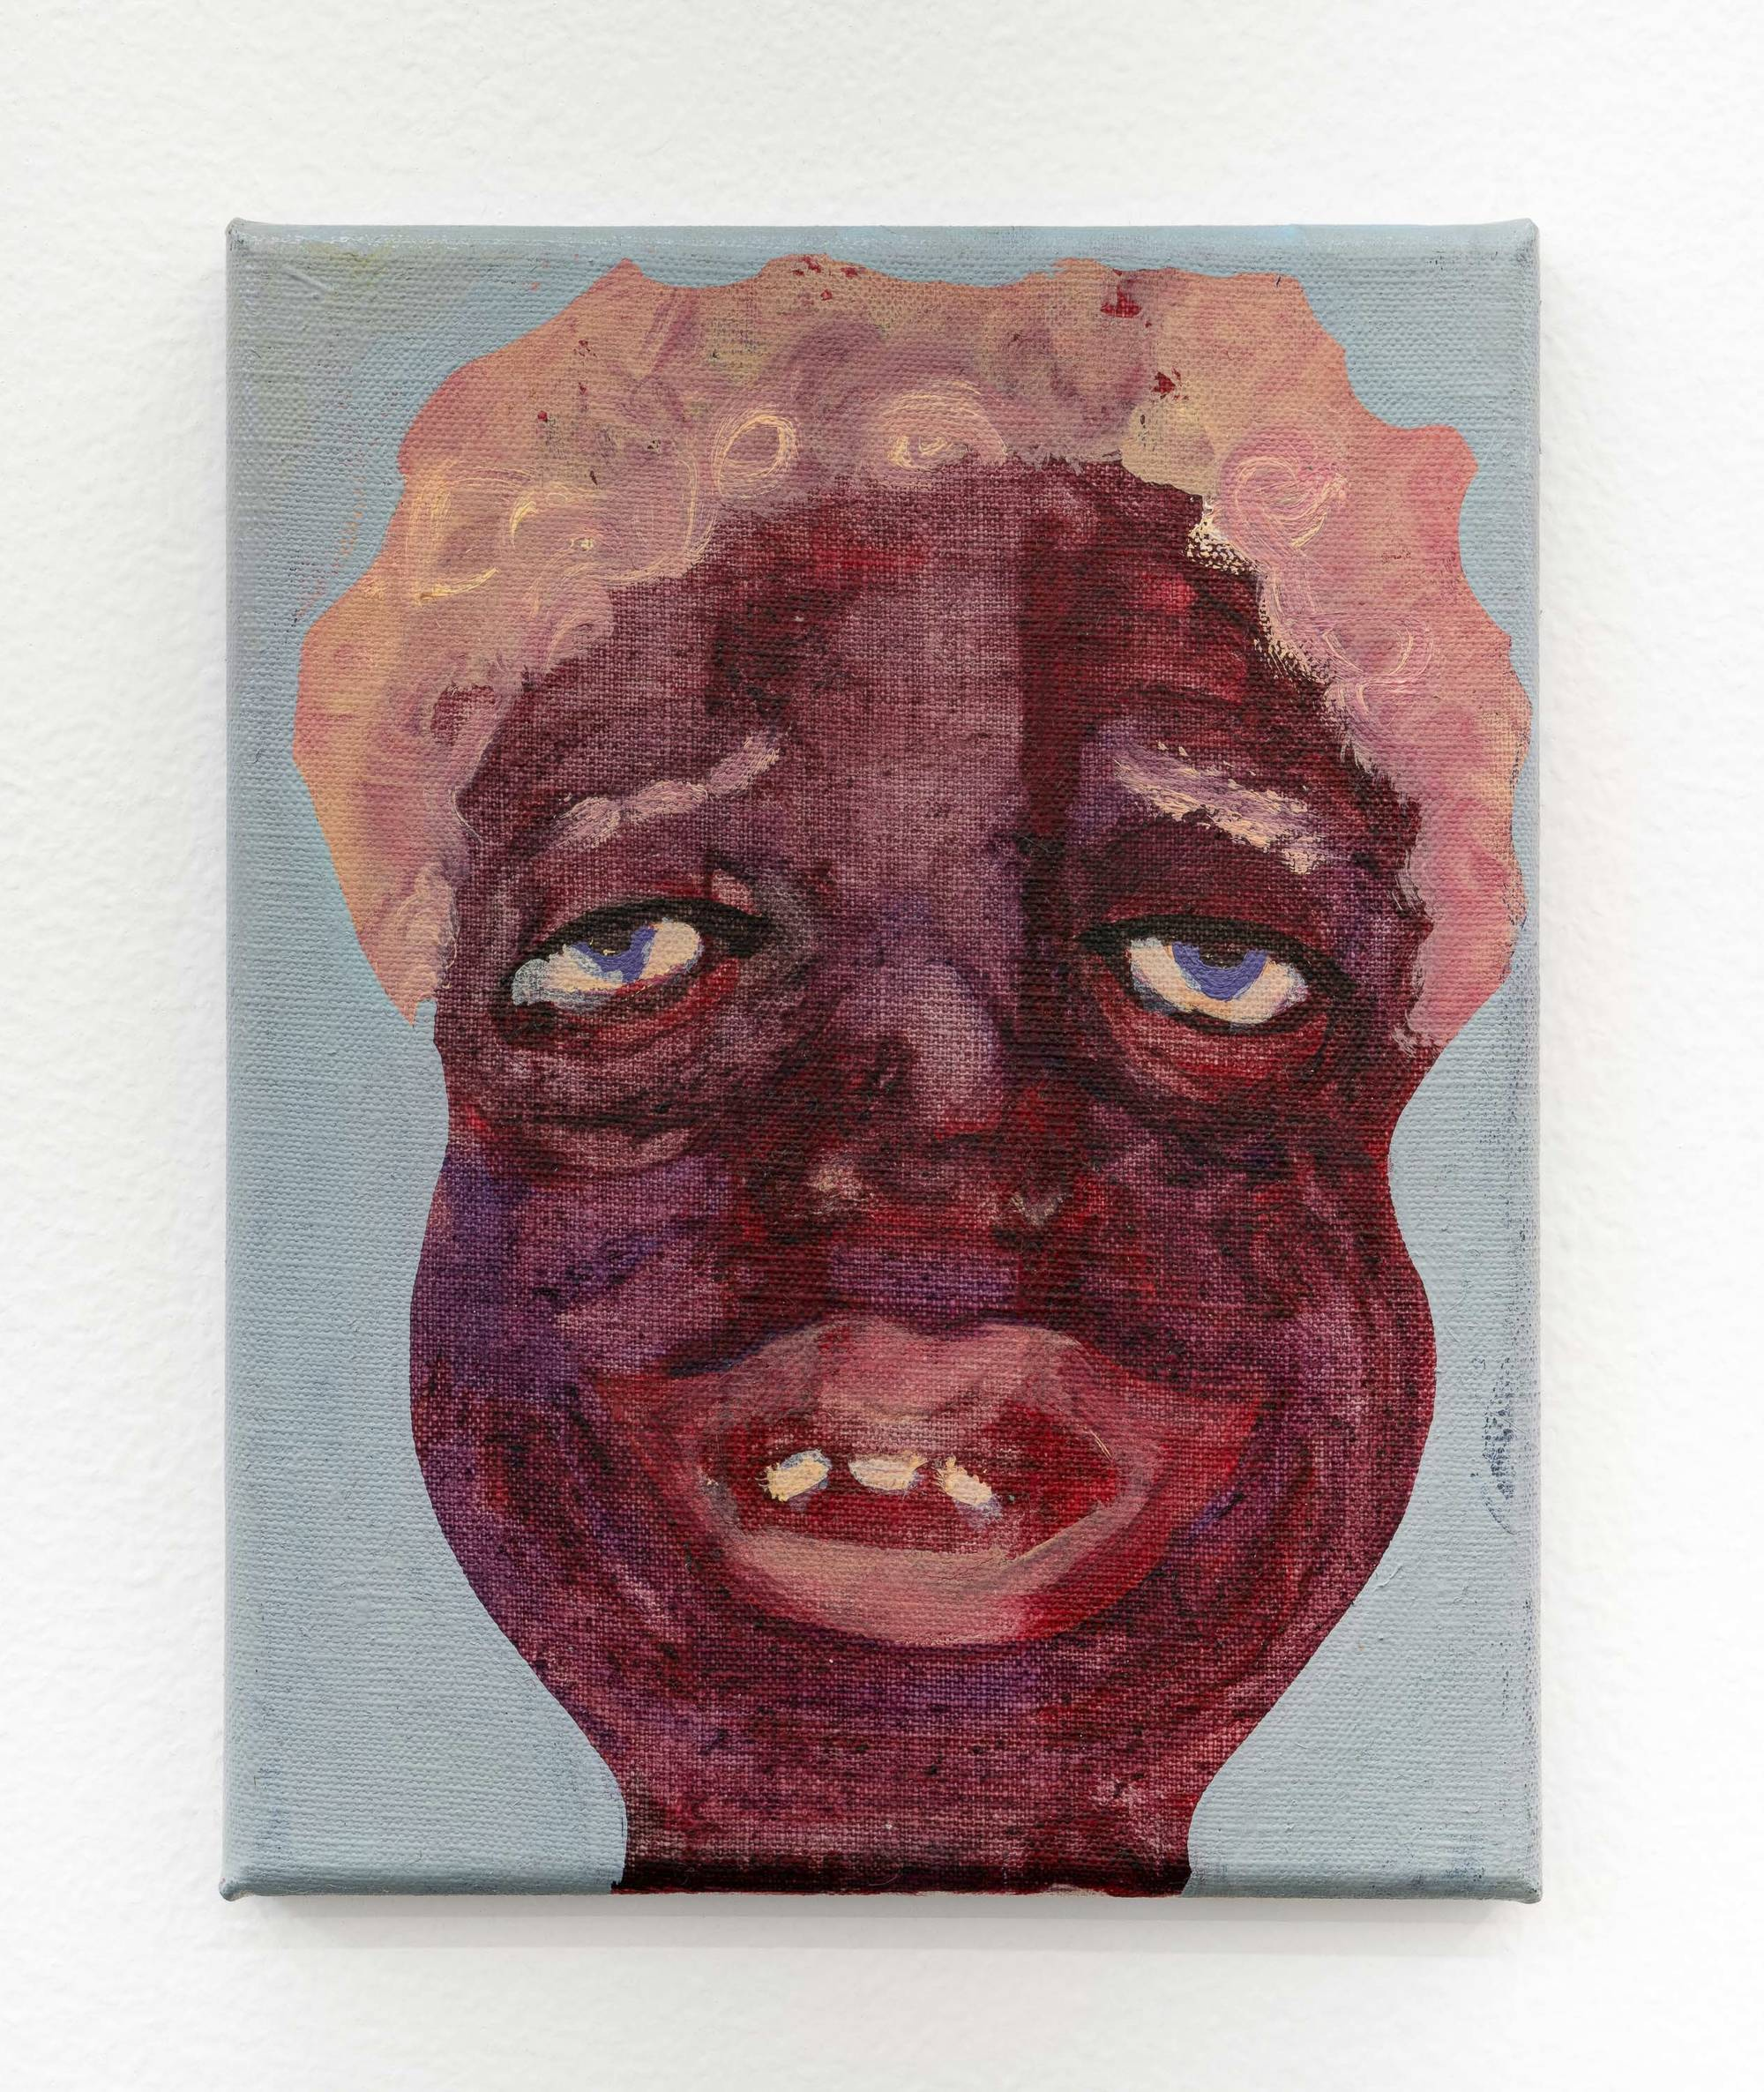 Image: Work by February James. Tethered To You #1, 2020, 10 x 8 inches. Oil on canvas. The portrait of a figure with deep brown and purple skin-tones is complimented by short, curly cotton-candy pink colored hair. Their eyes and mouth are partially open, revealing three teeth through a partial smile and an expression of longing. Image courtesy of the artist and Monique Meloche Gallery.